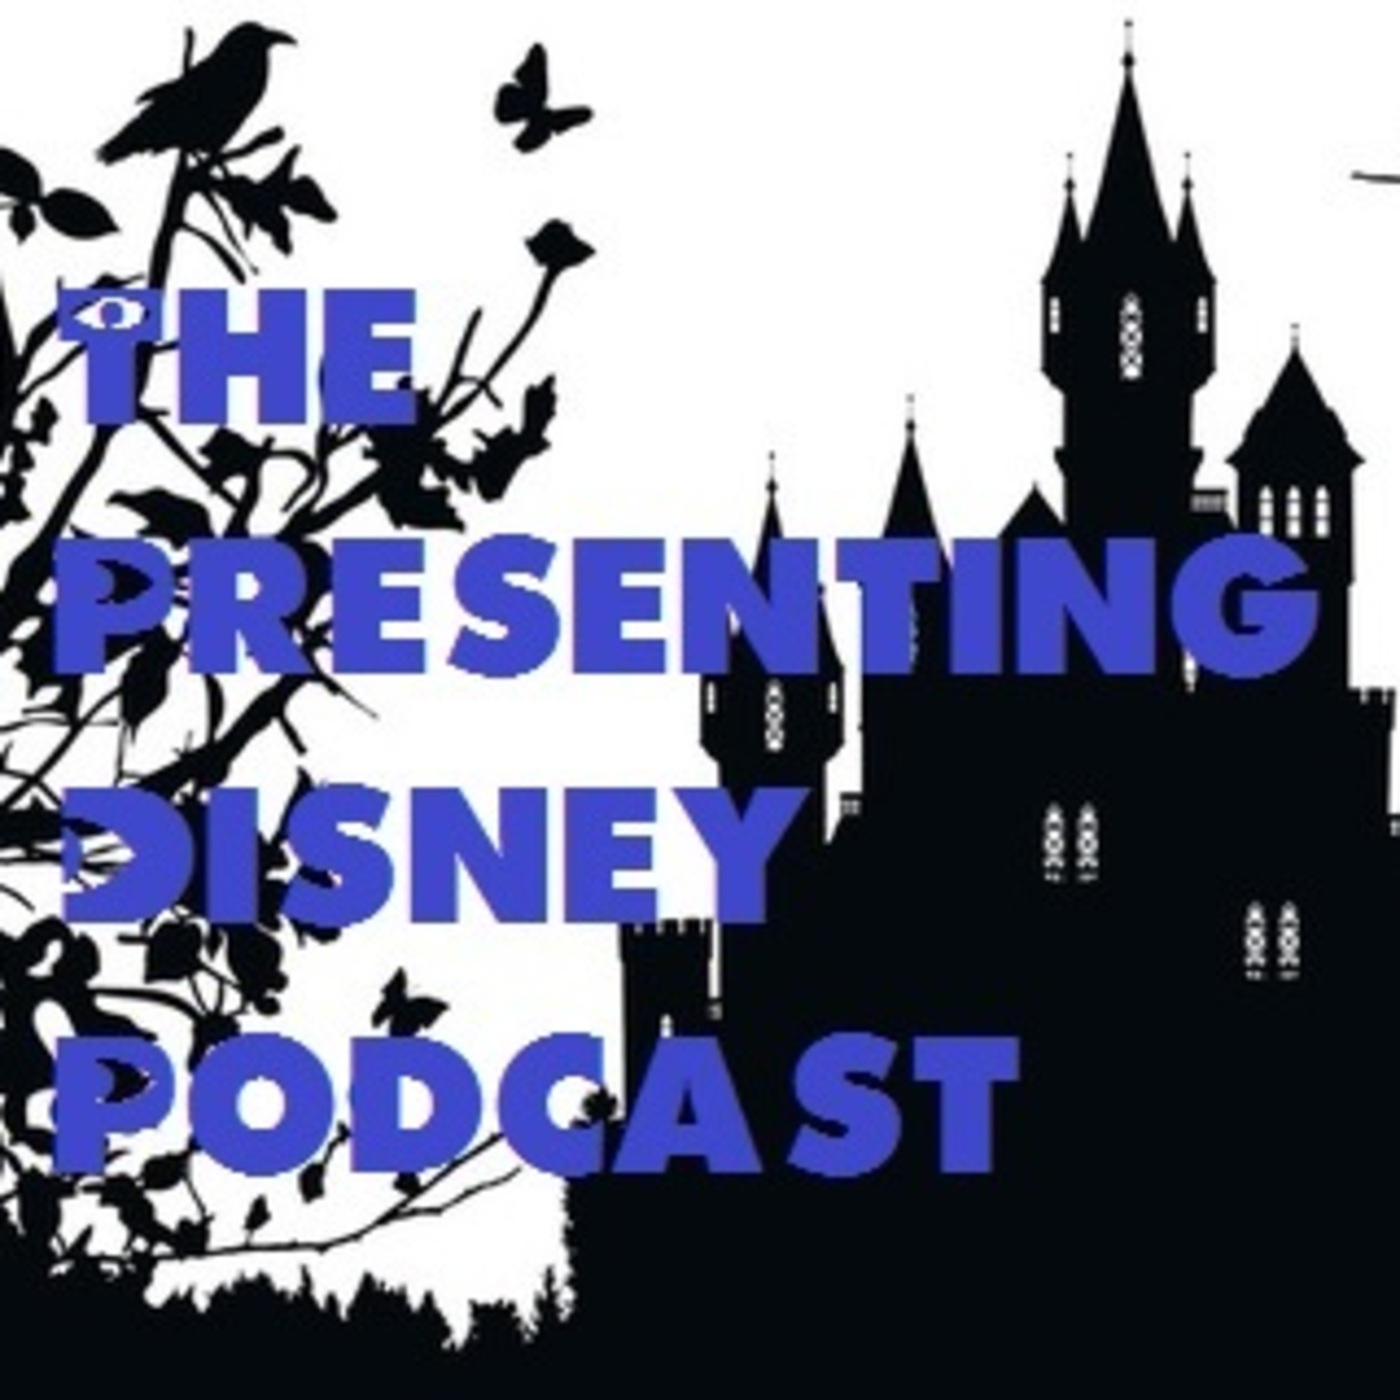 Presenting Disney Podcast